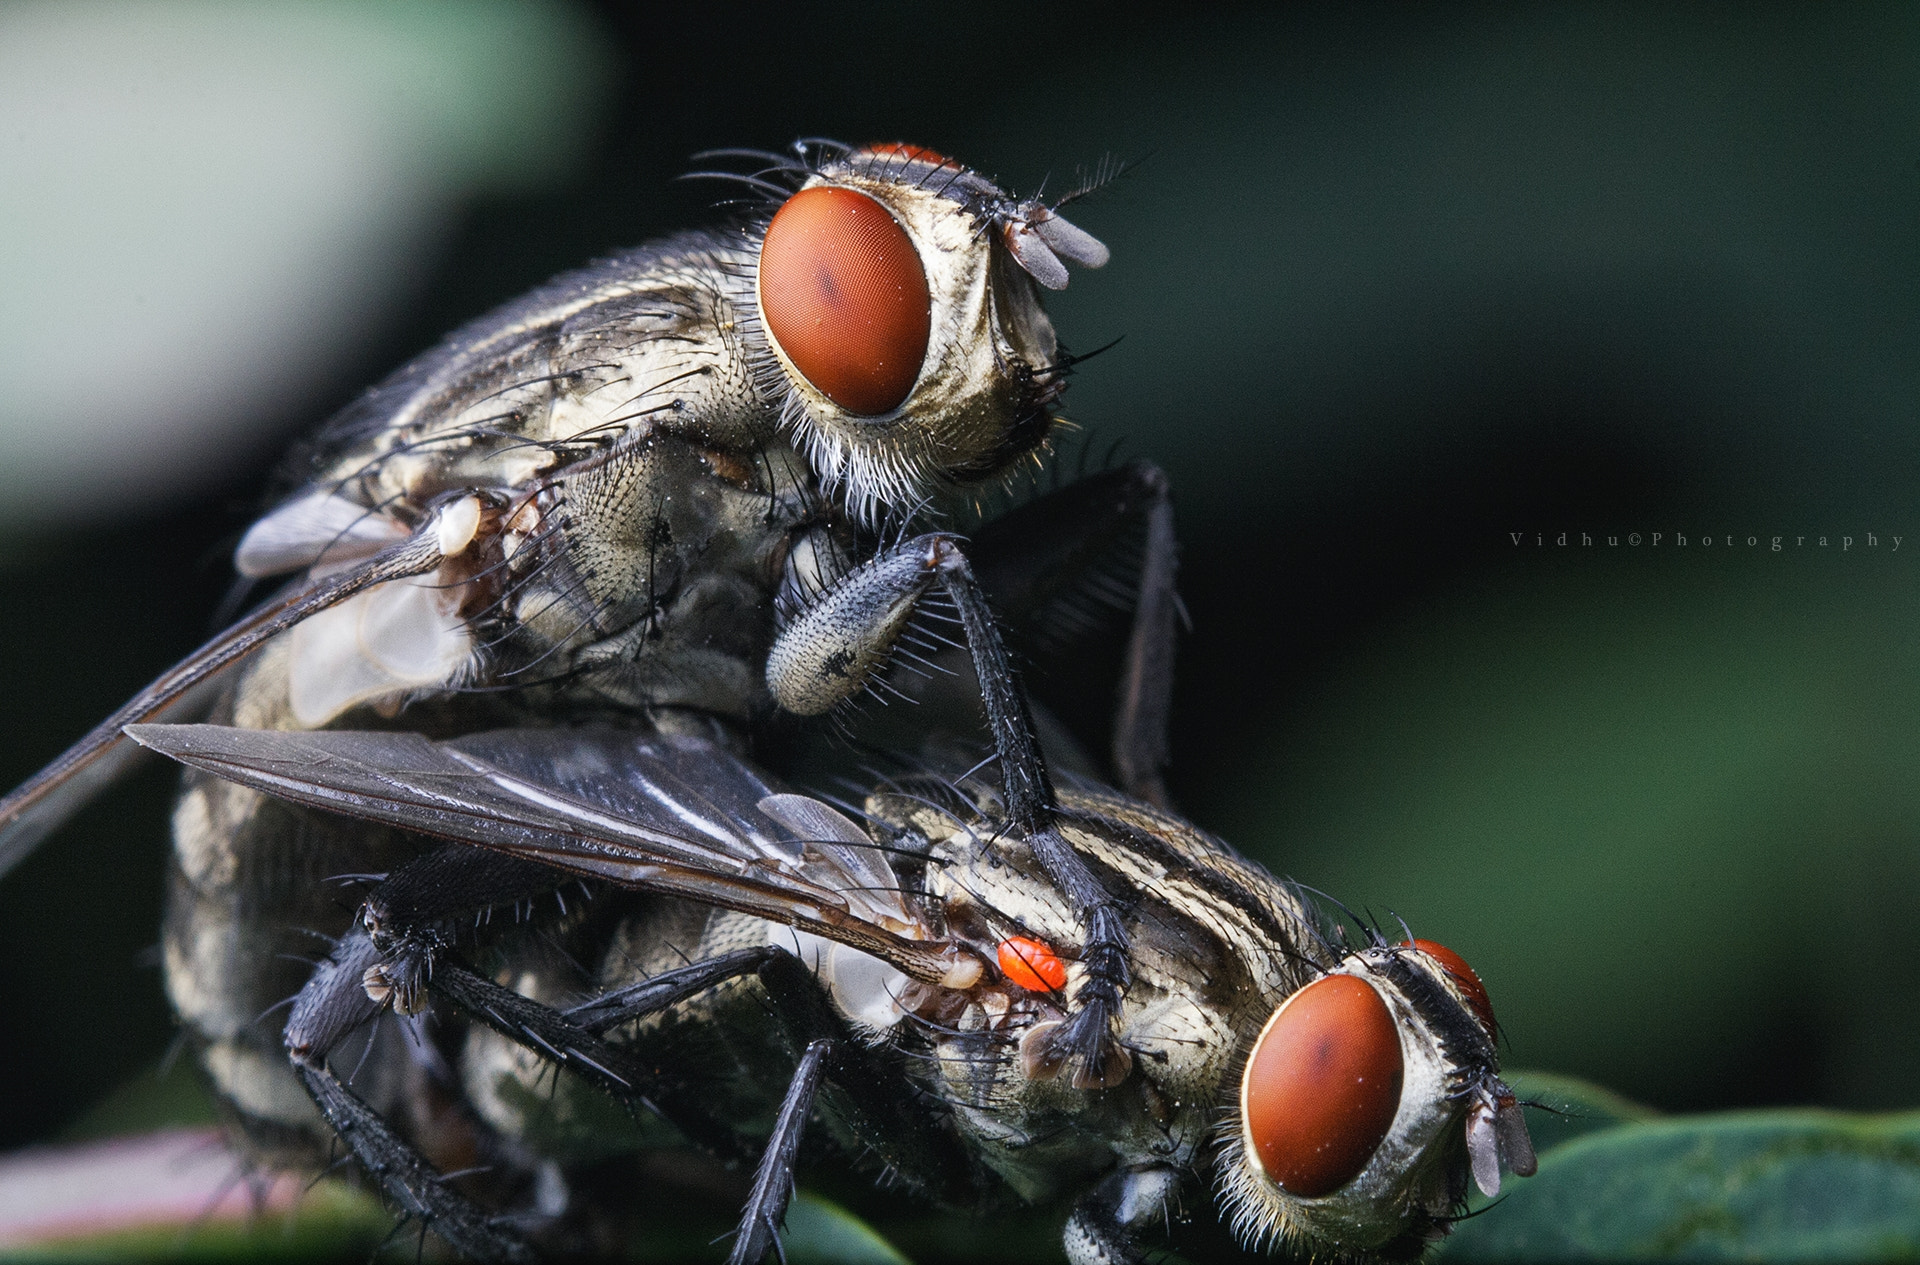 Photograph Caught in the act  by Vidhu S on 500px